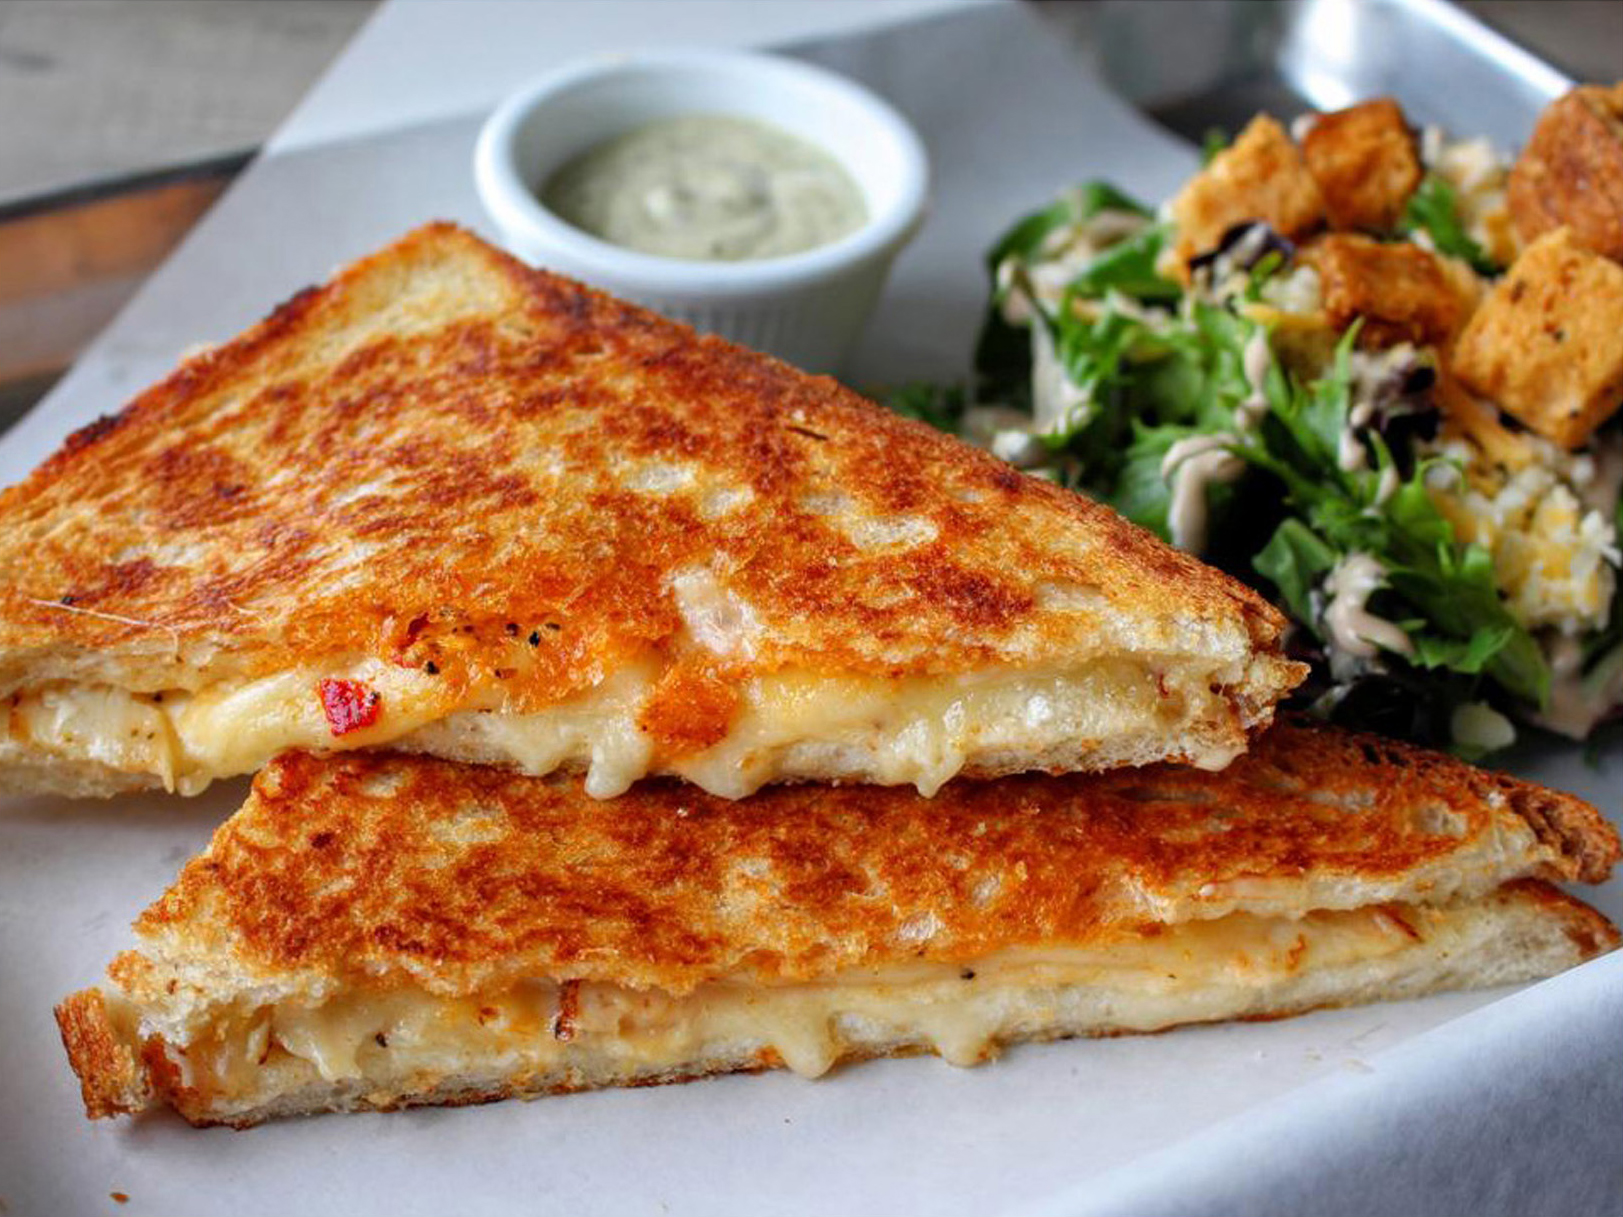 The 10 Best Places in America to Get a Grilled Cheese, According to Yelp Reviewers